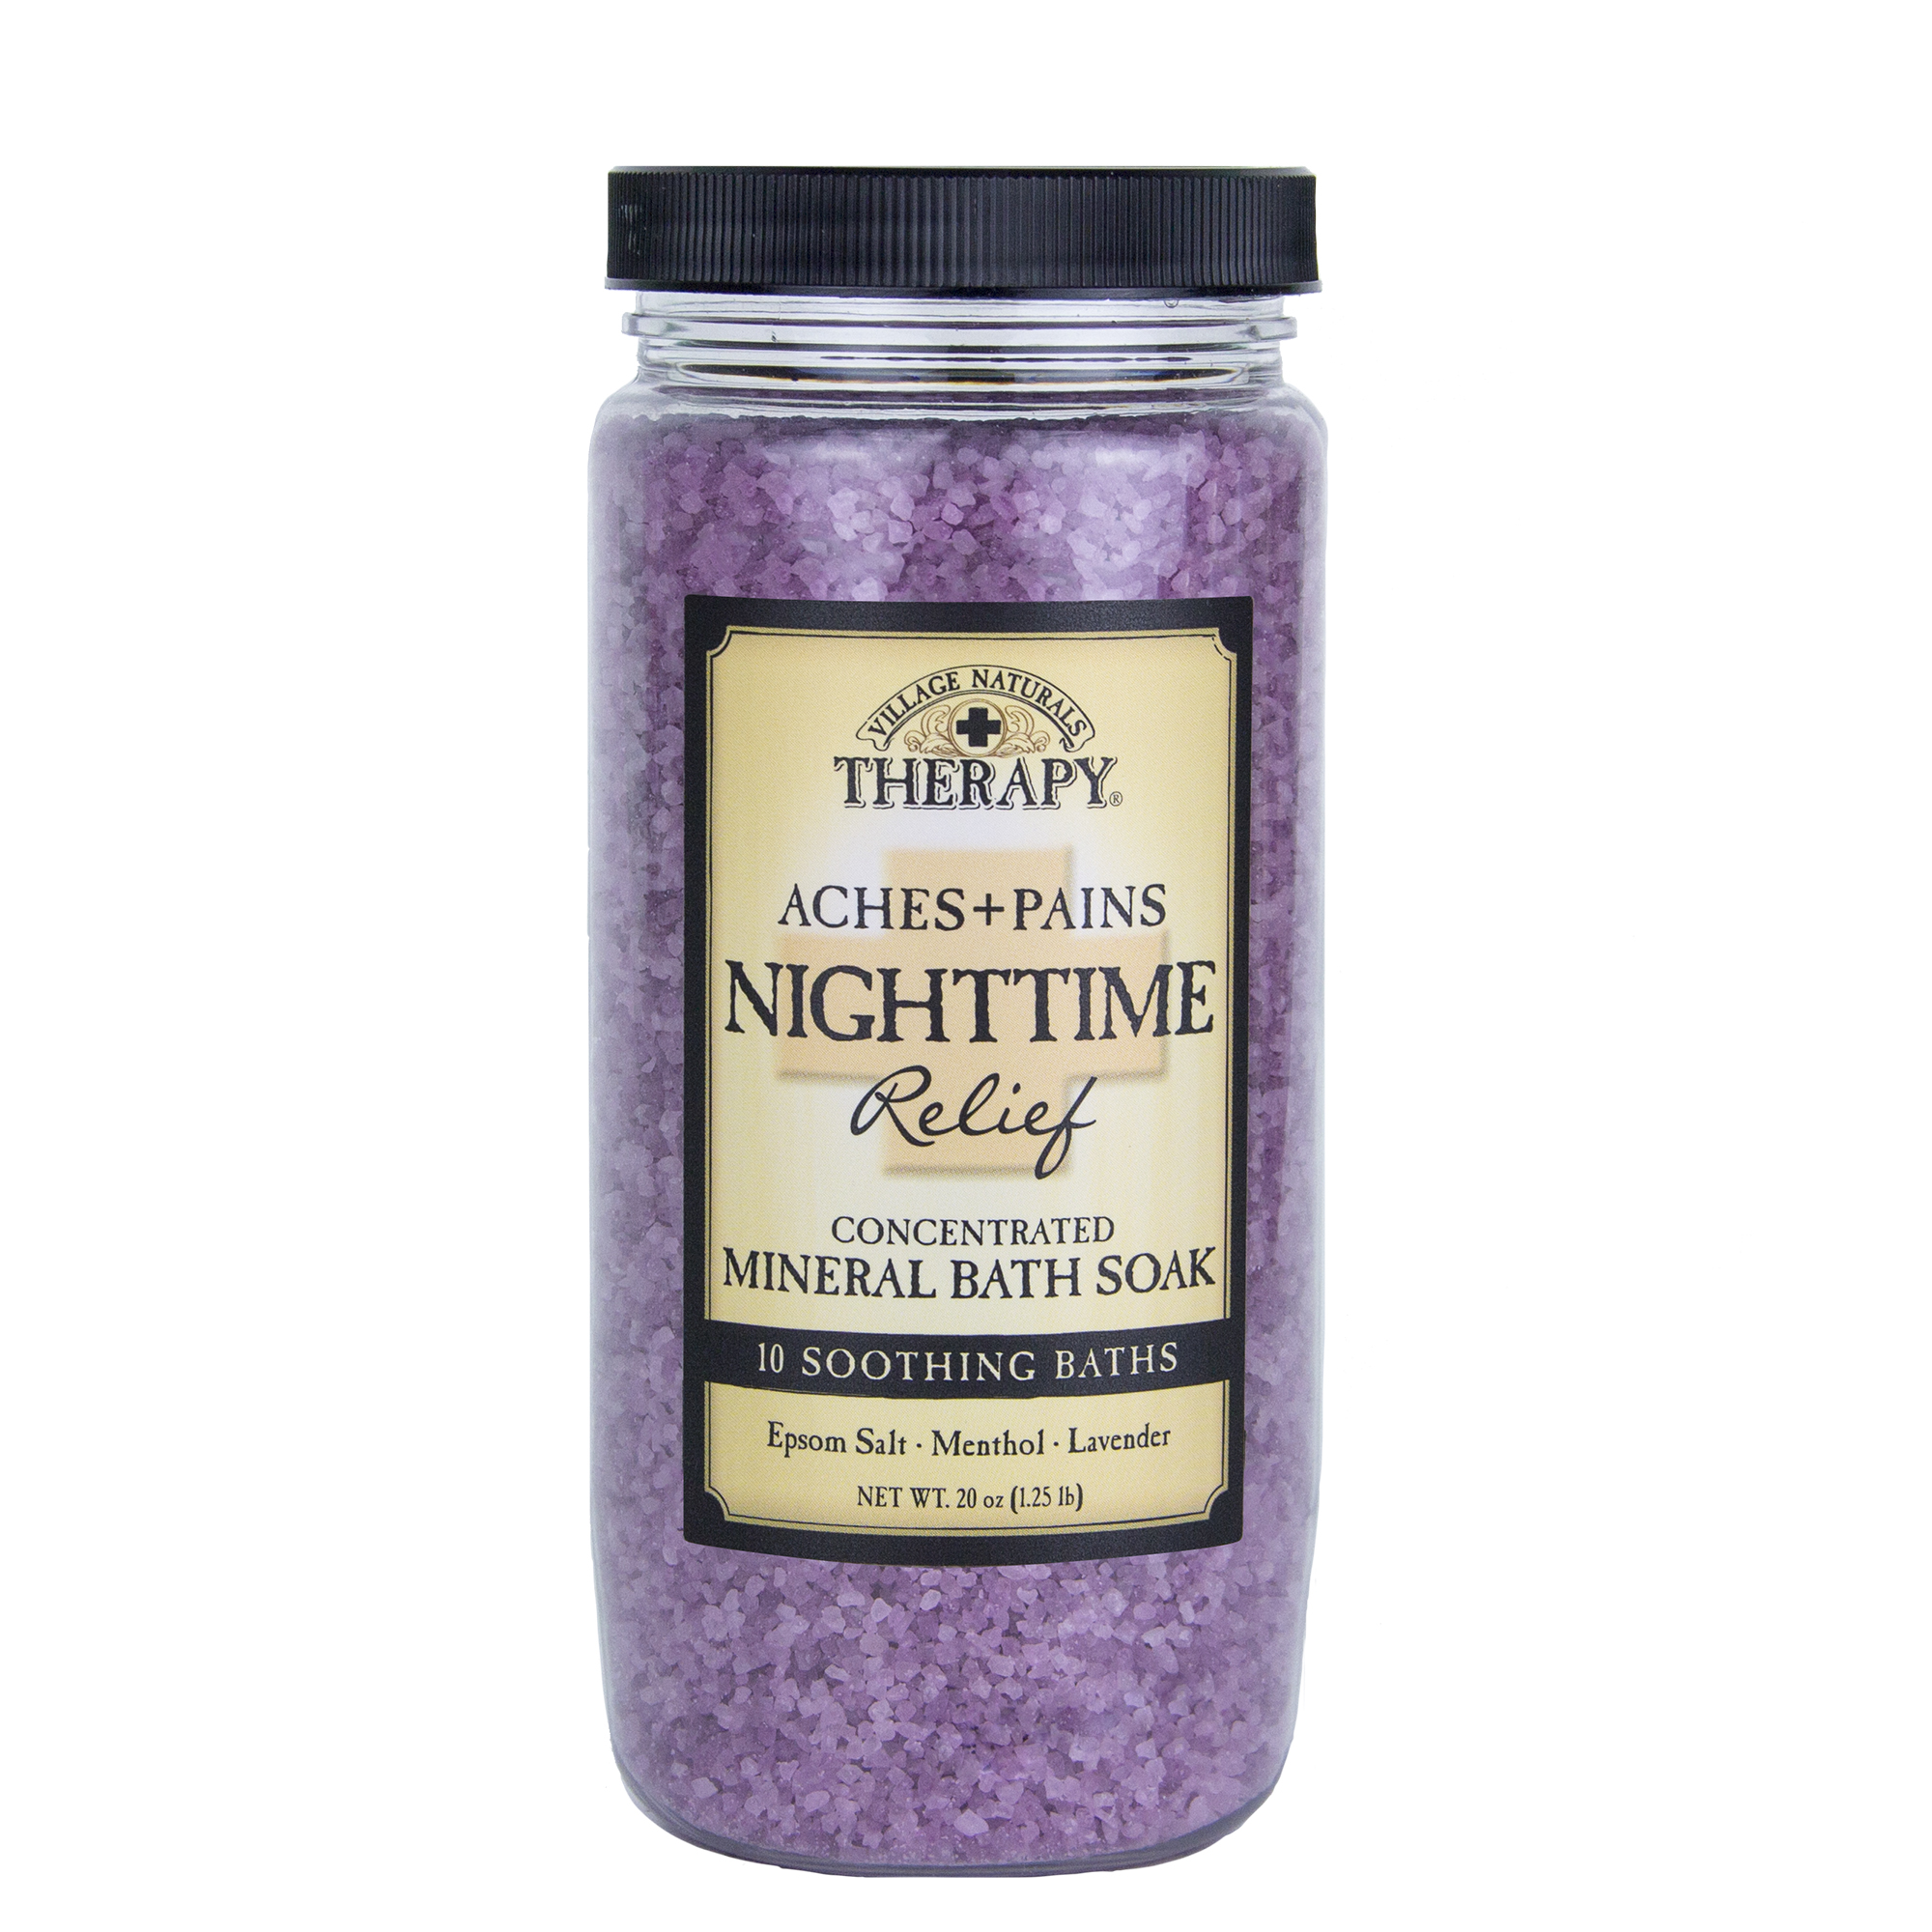 Village Naturals Therapy, Aches & Pains Nighttime Relief Mineral Bath Soak, 20 Oz